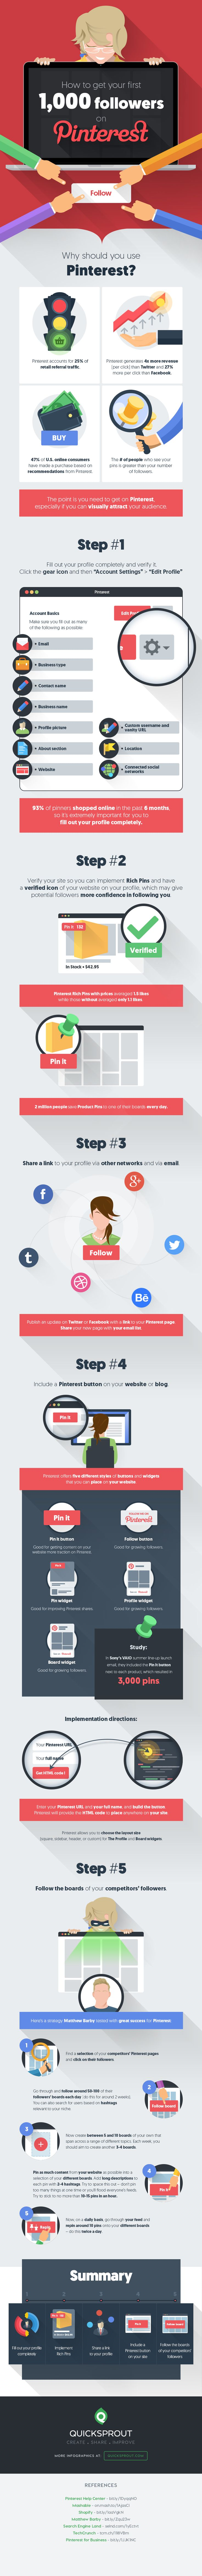 Wondering how to get followers on Pinterest? If you're a newbie, get your first 1,000 followers by following the steps on this infographic!